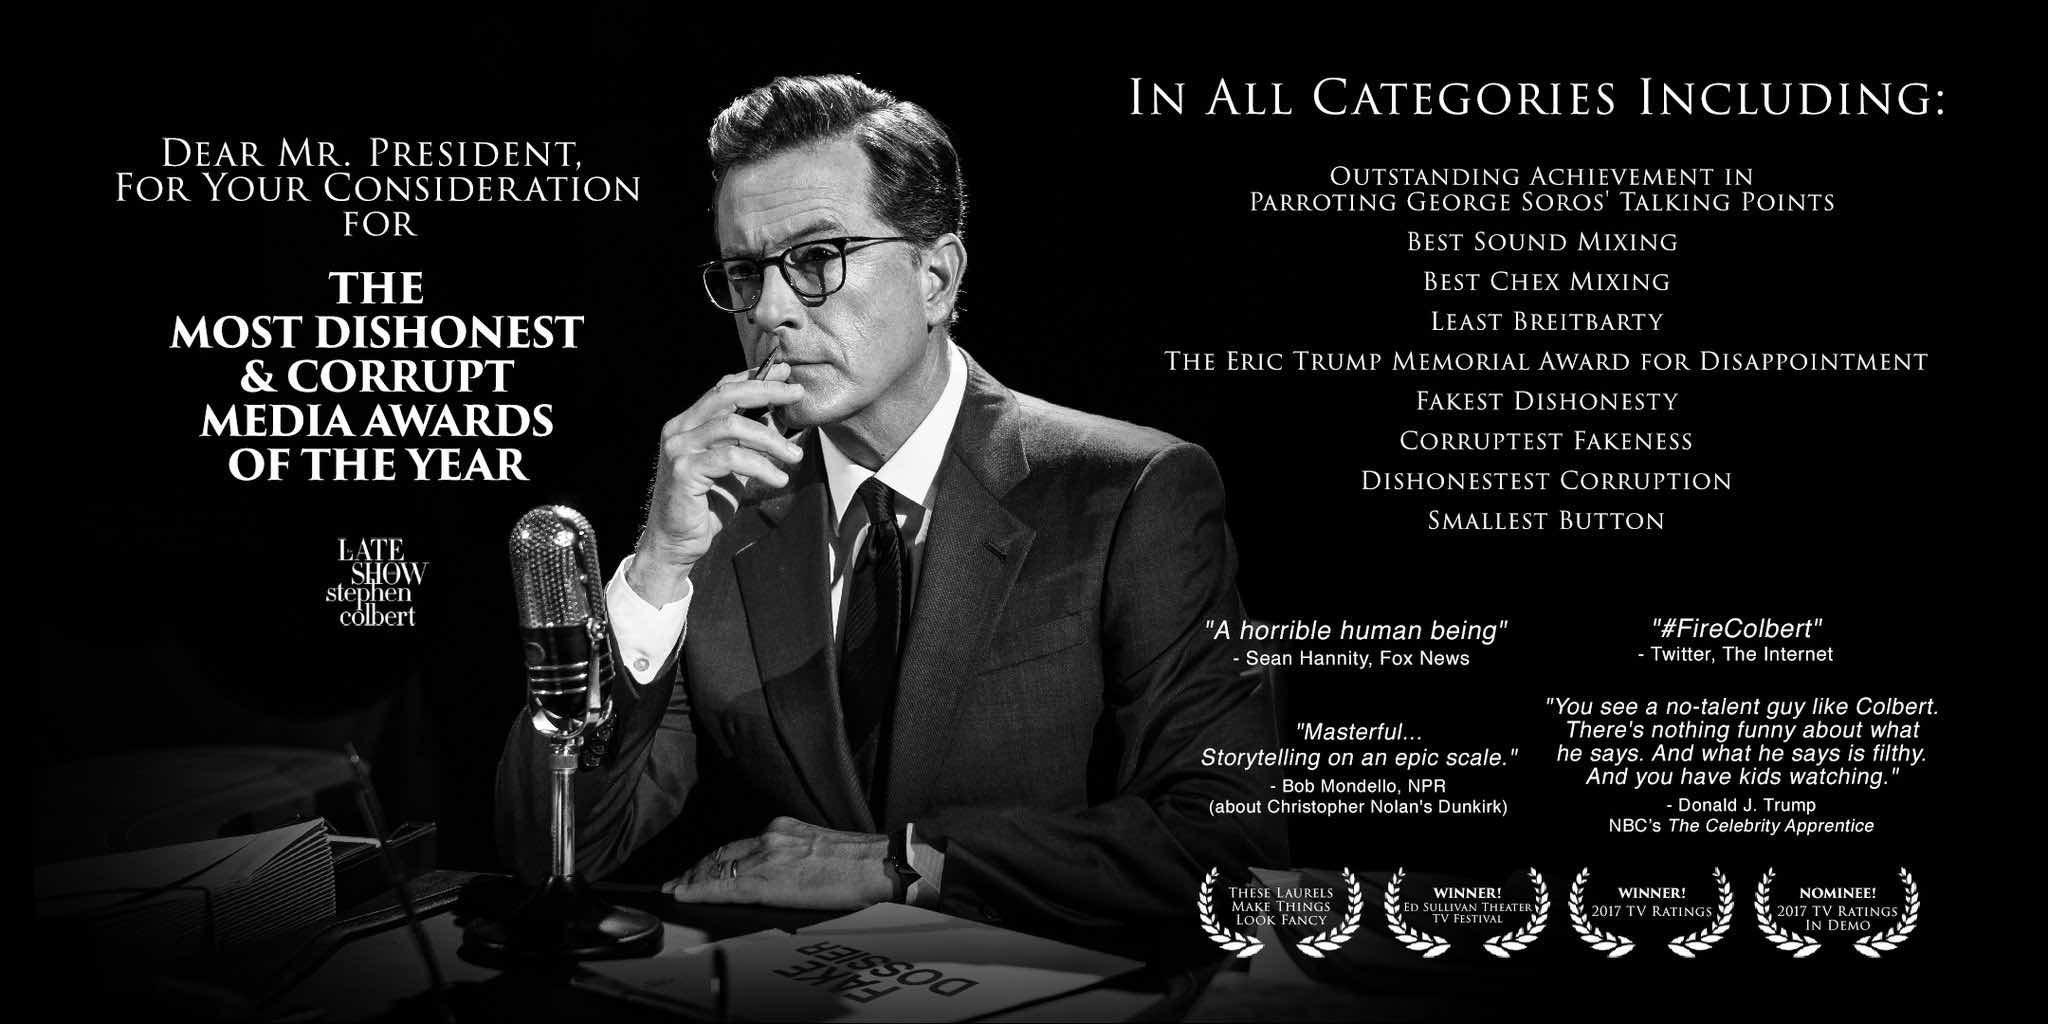 Colbert, for your consideration